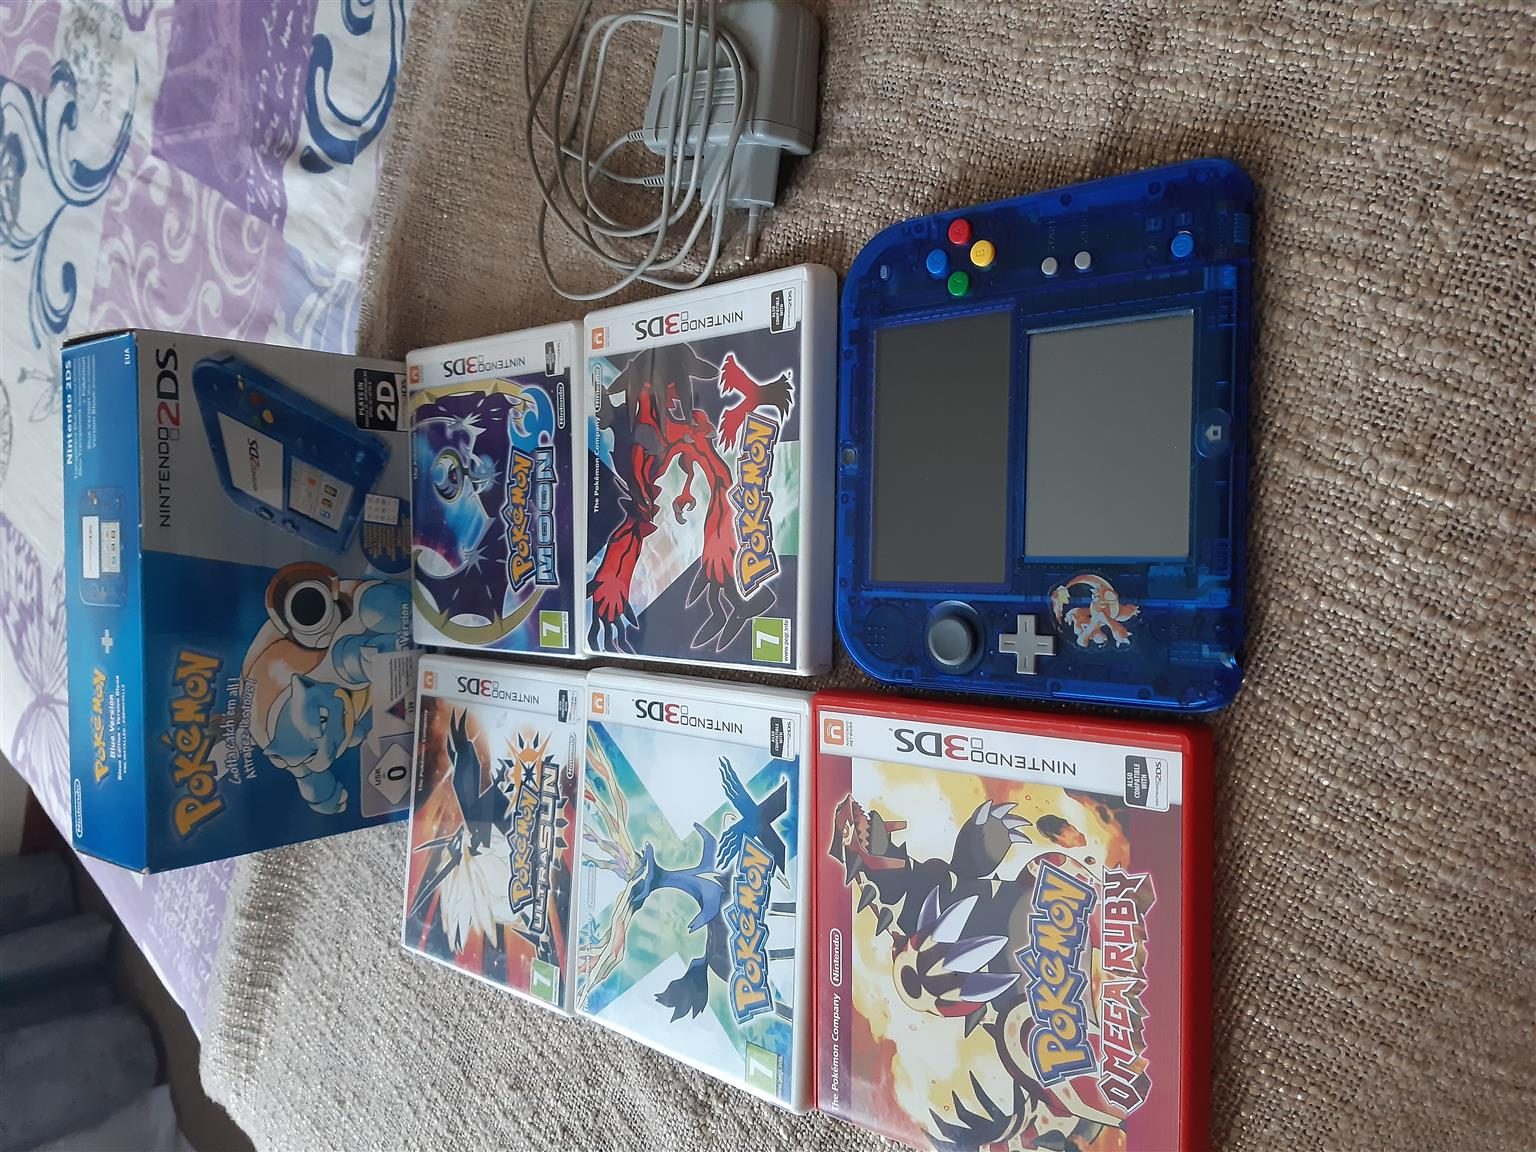 Limited Special edition Pokemon Blue Nintendo 2DS and games